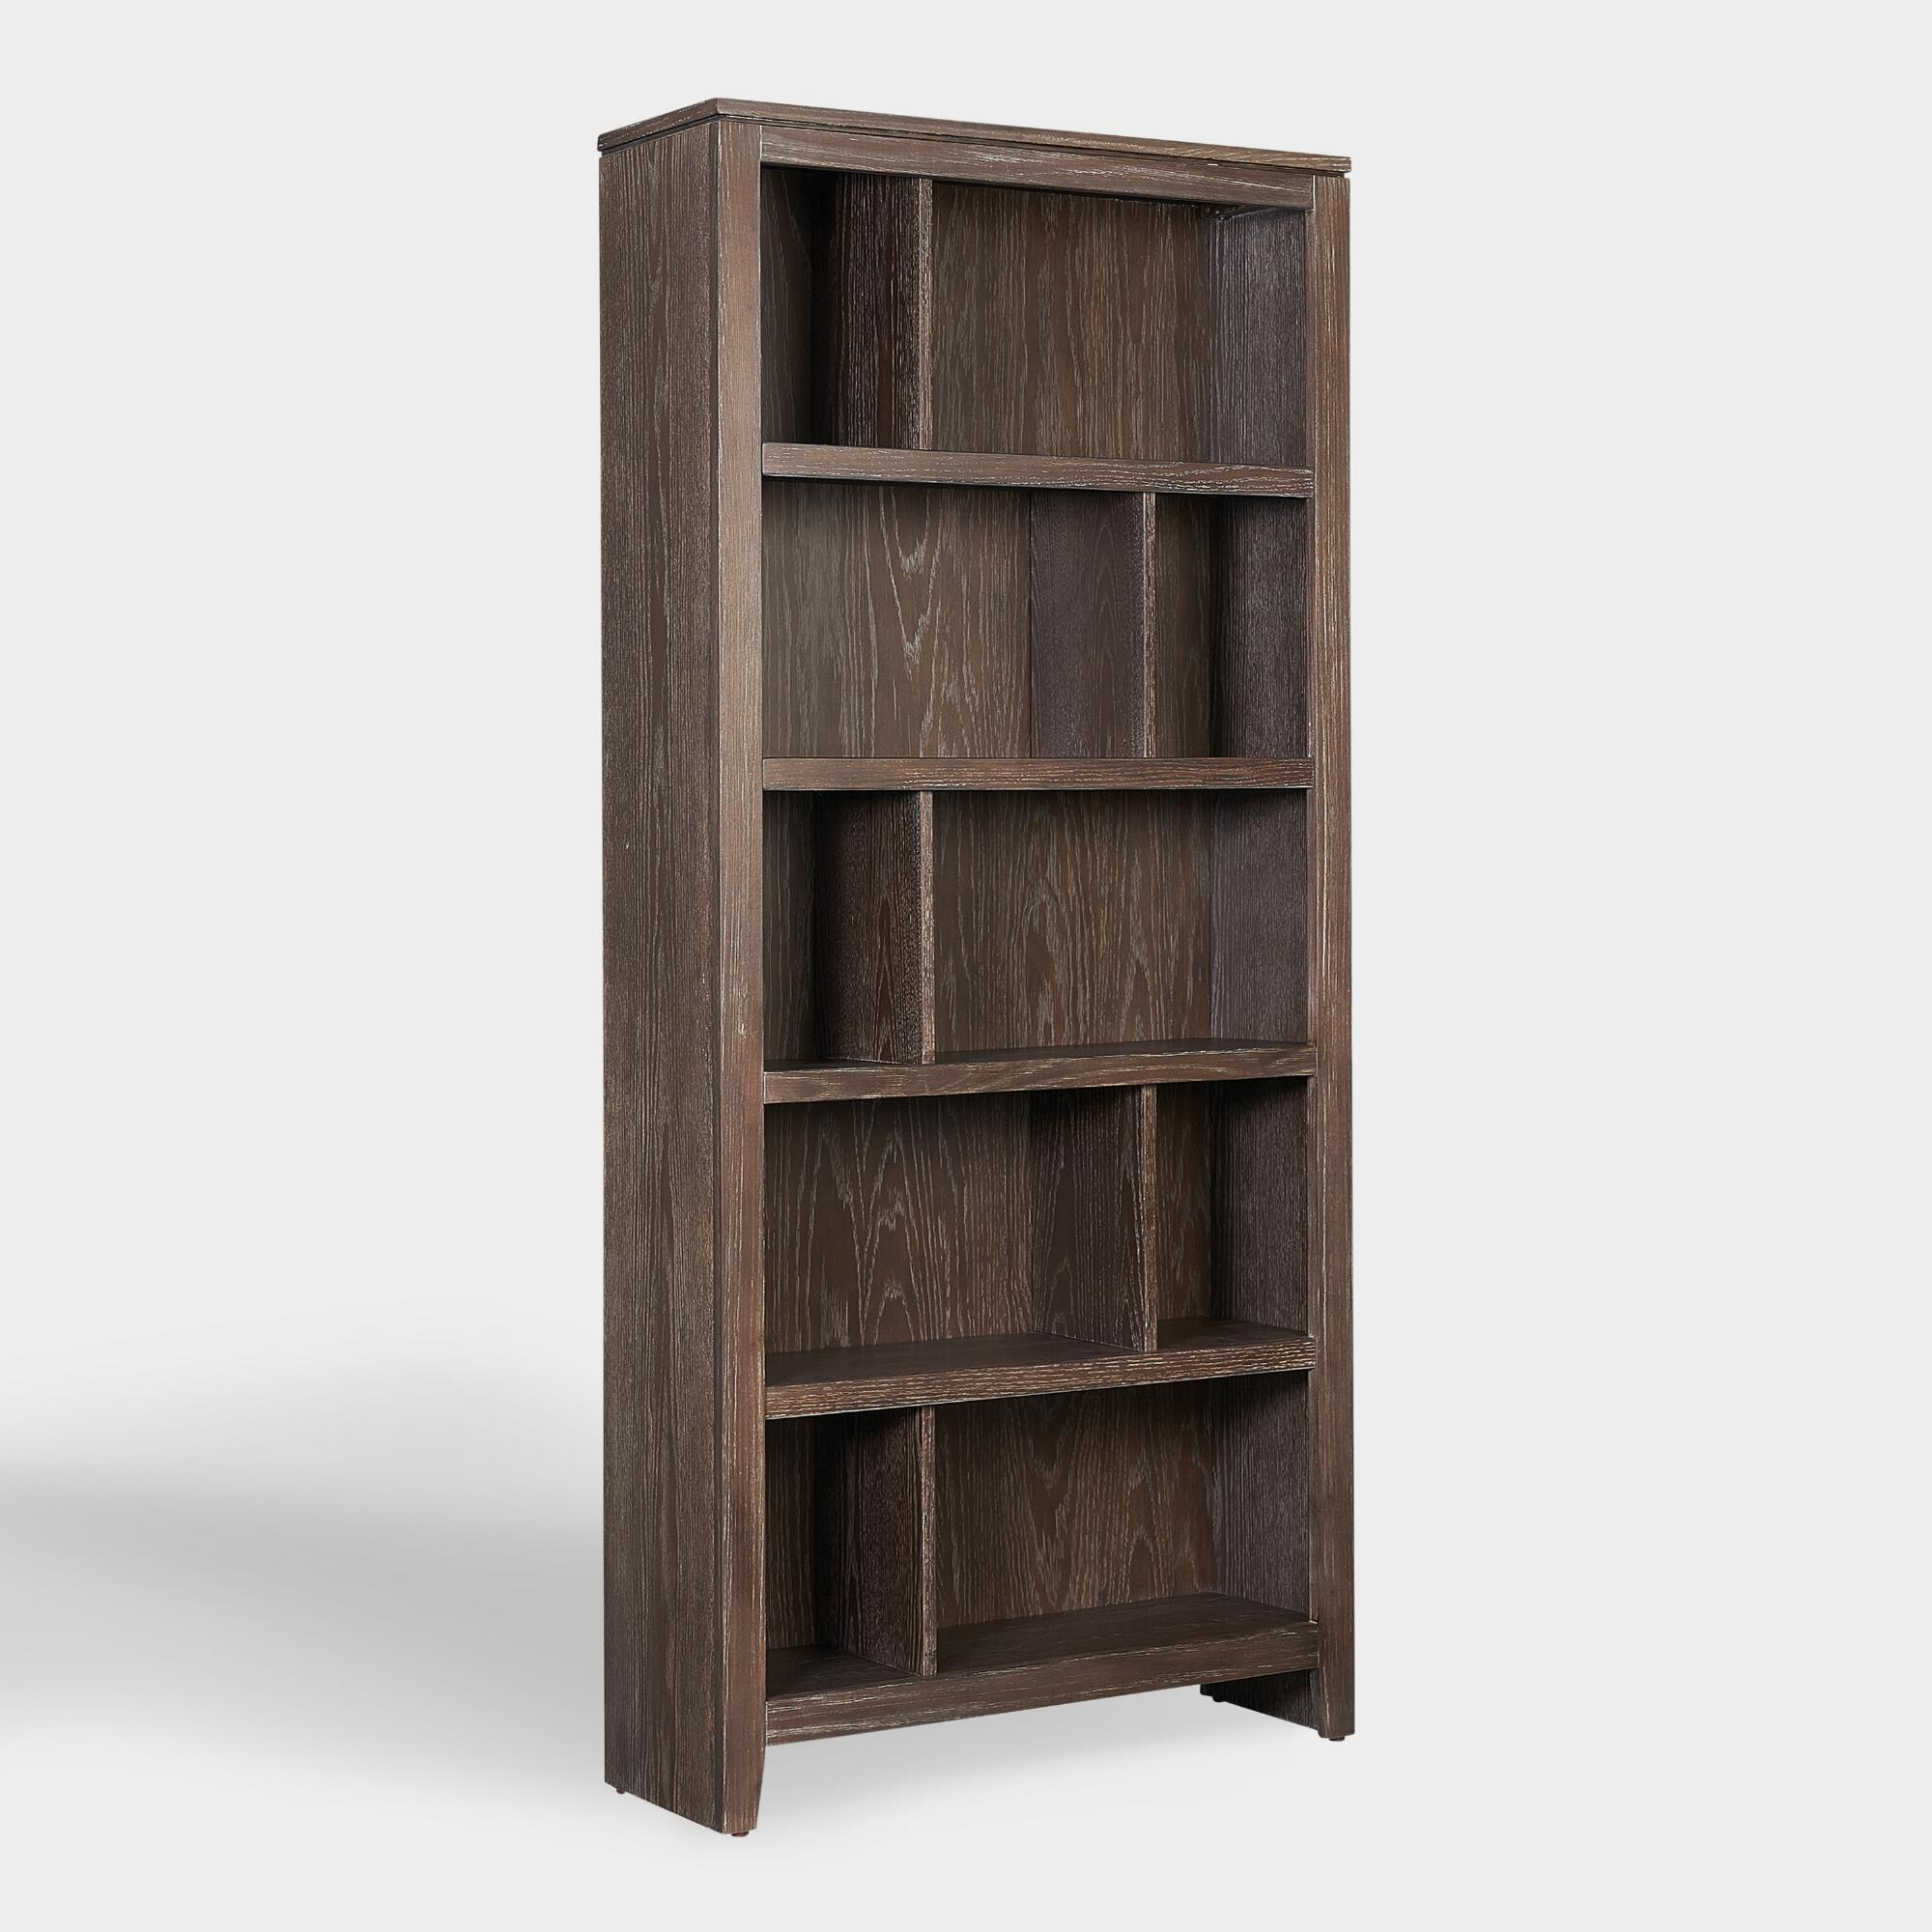 Large Rustic Gray Wood Oxford Bookshelf by World Market